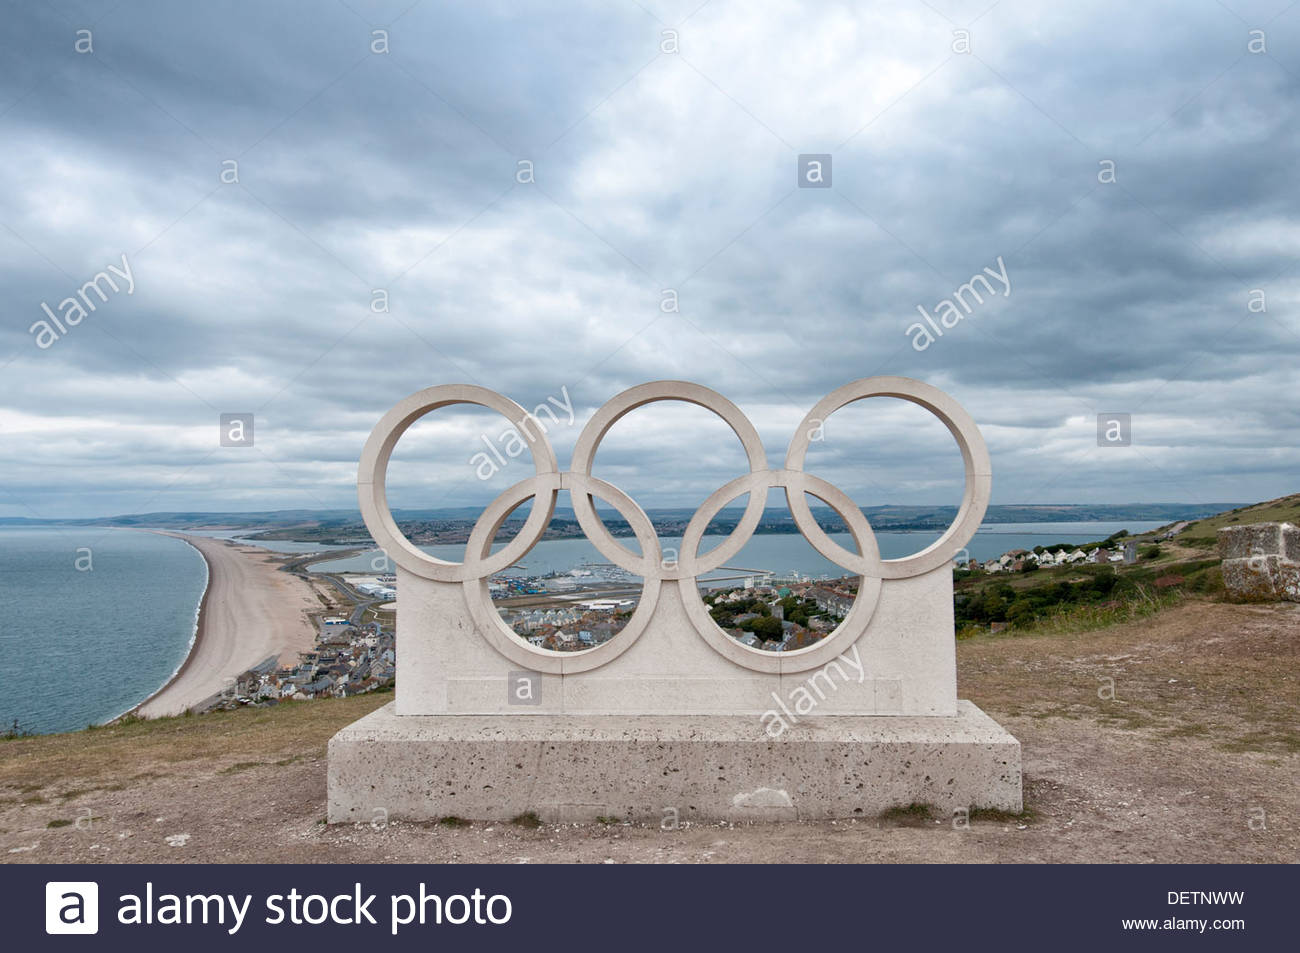 Stone Olympic Rings Stock Photos & Stone Olympic Rings Stock.